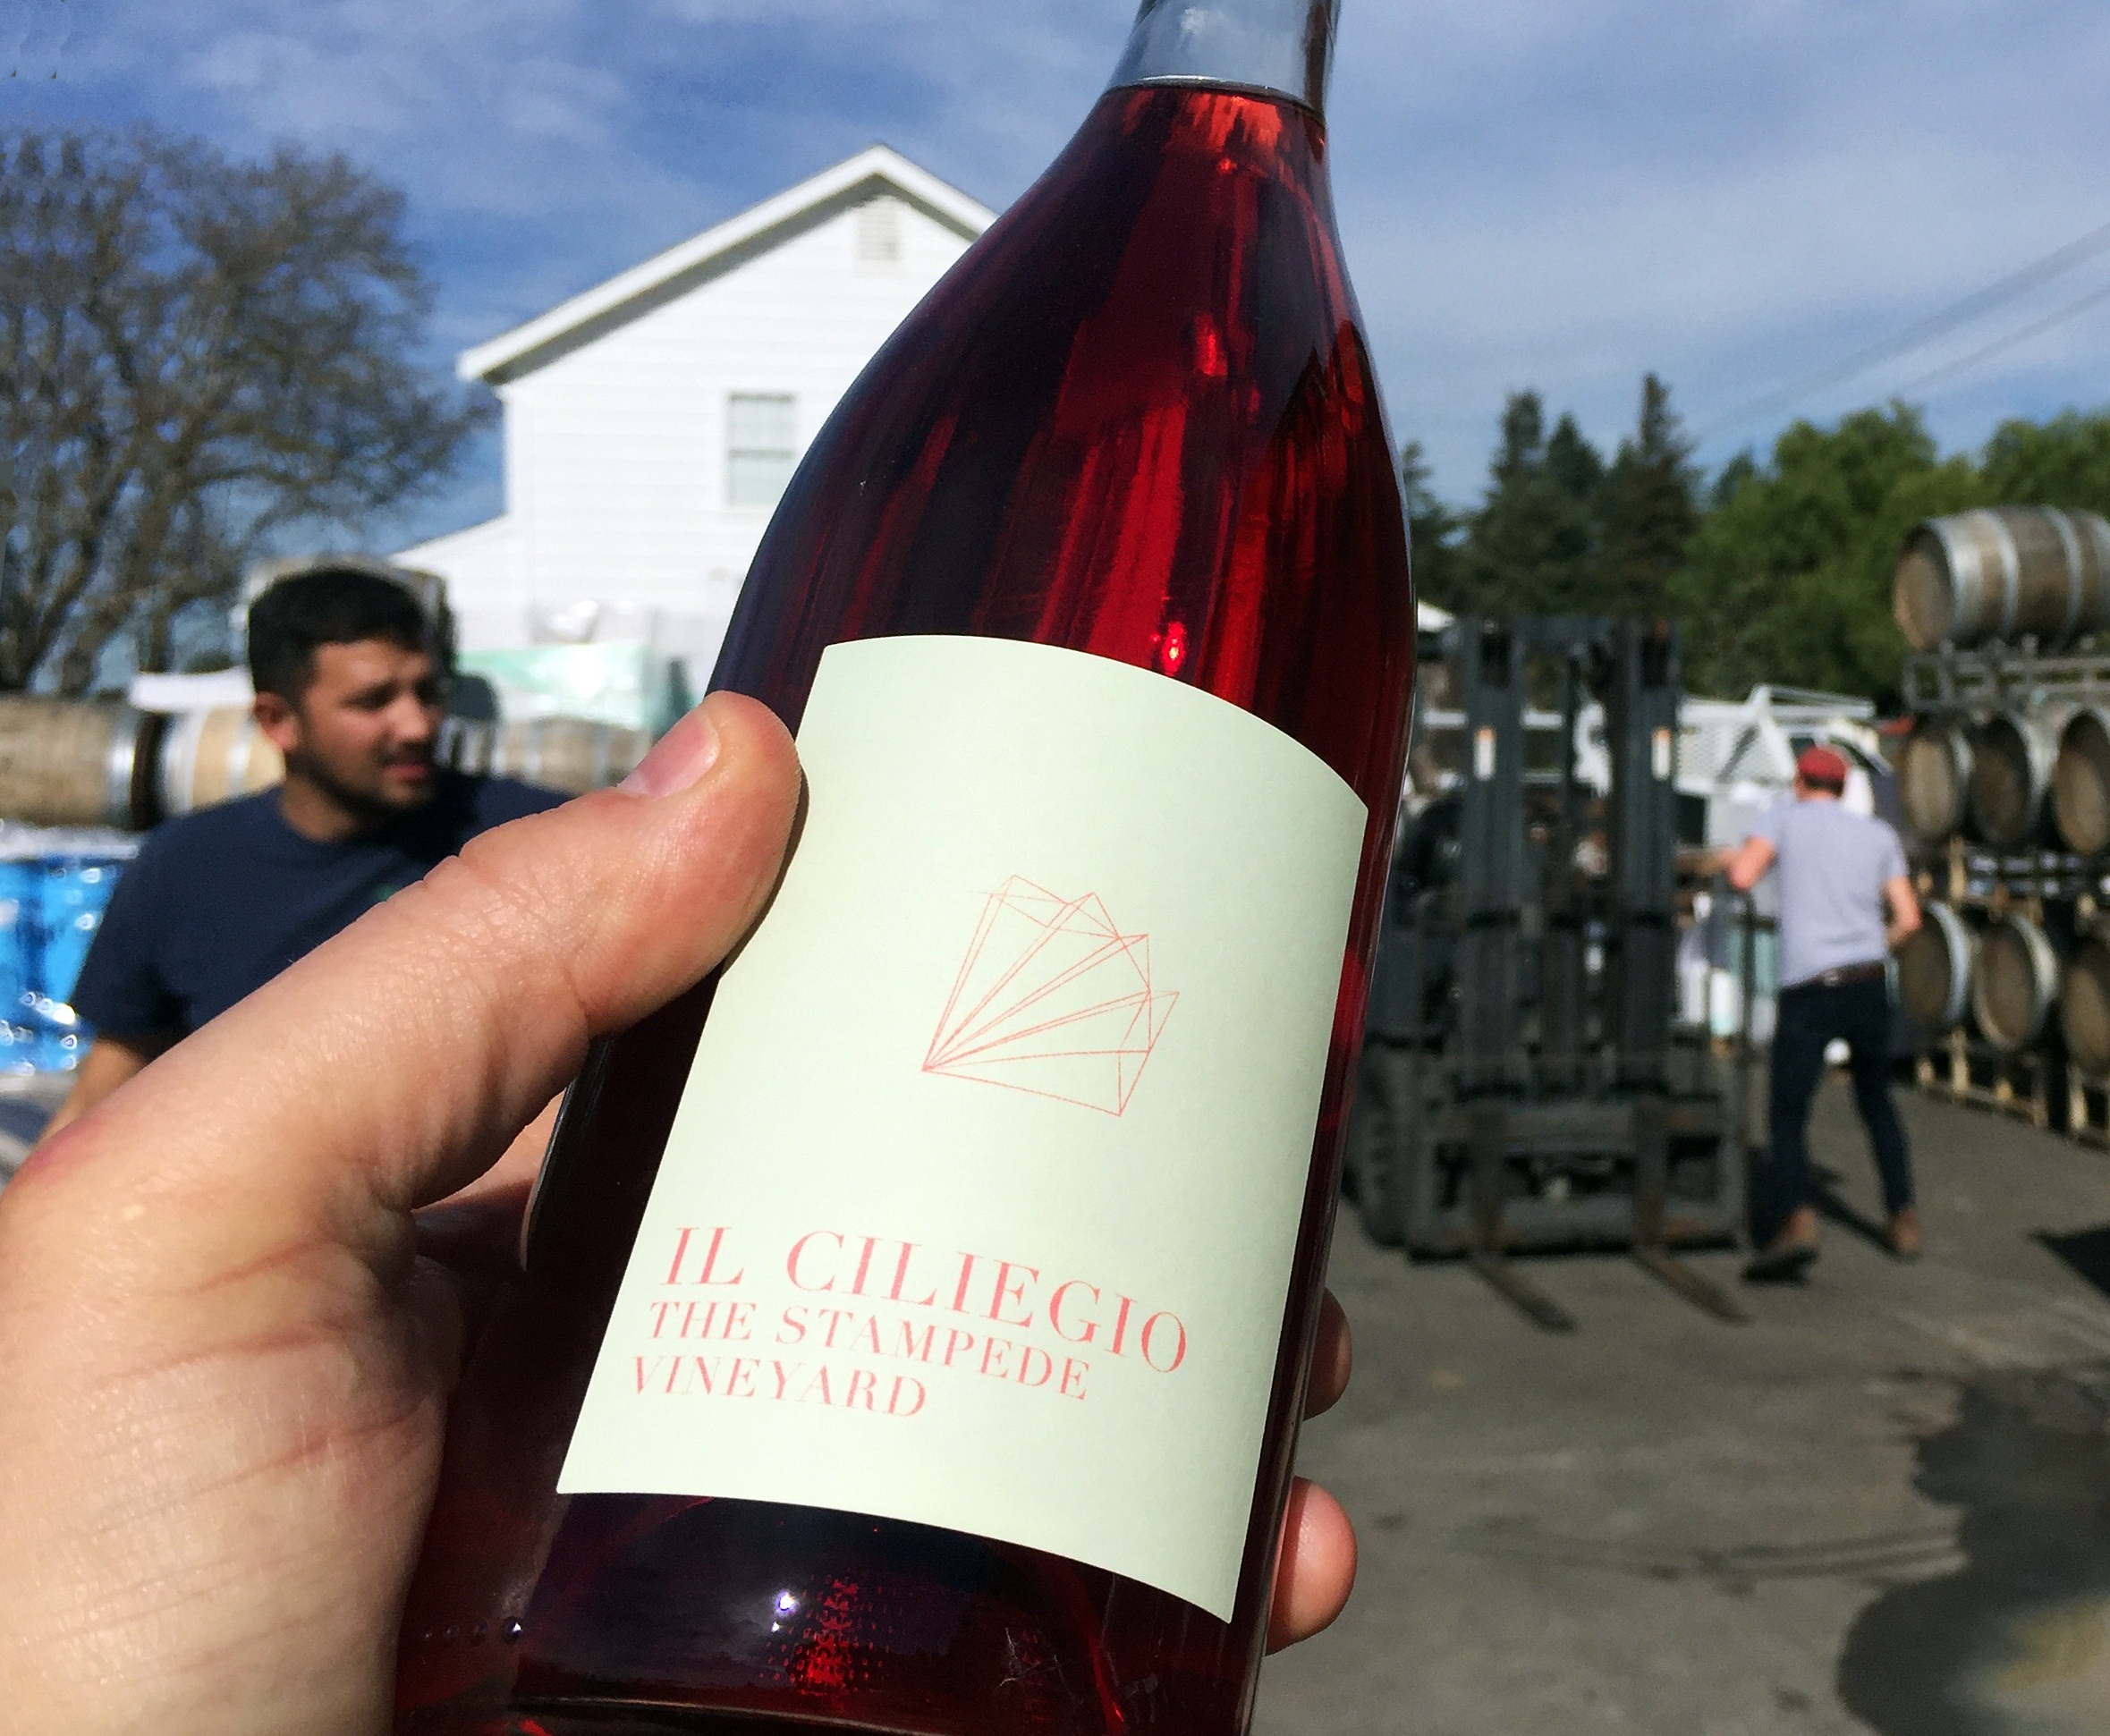 2015 Il Ciliegio Stampede Vineyard - the scholium project